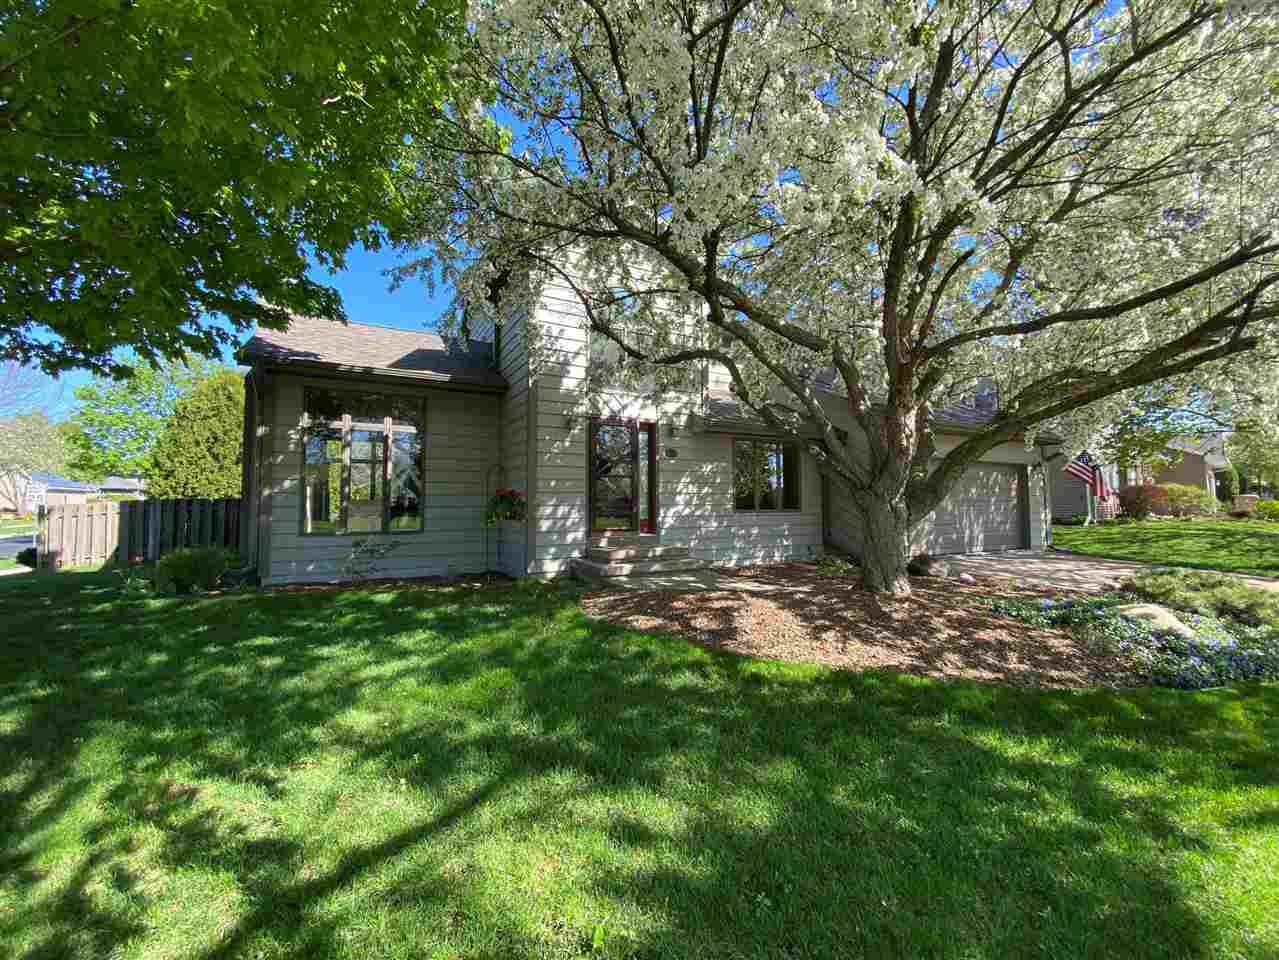 421 N High Point Rd, Madison, WI 53717 - #: 1884254